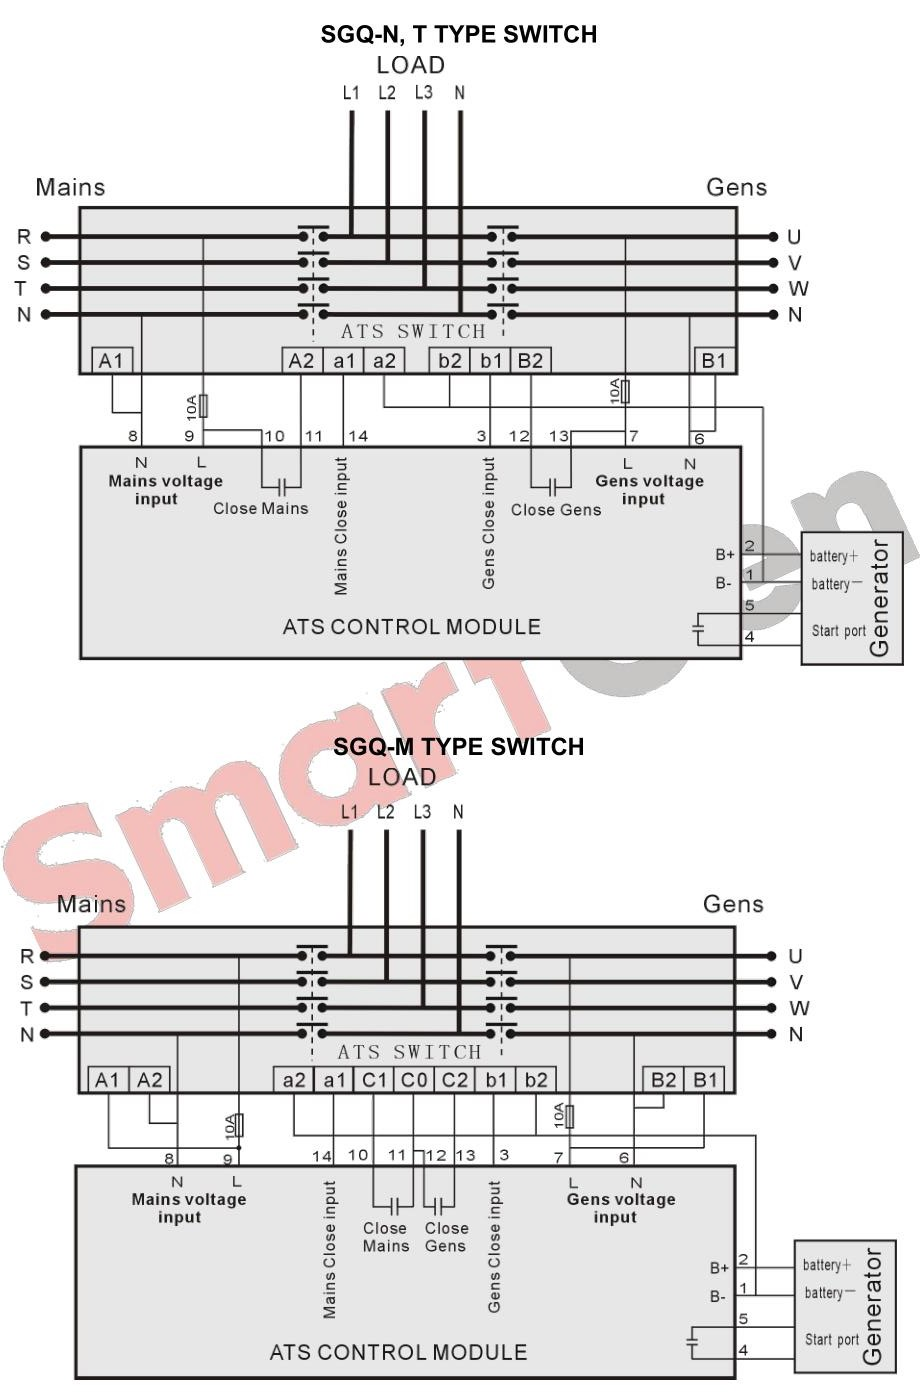 Smartgen Controller Wiring Diagram 34 Images Control Ats Hat72 Hat72monitors 1p2w Ac System Smartgengenset Controllergenerator At